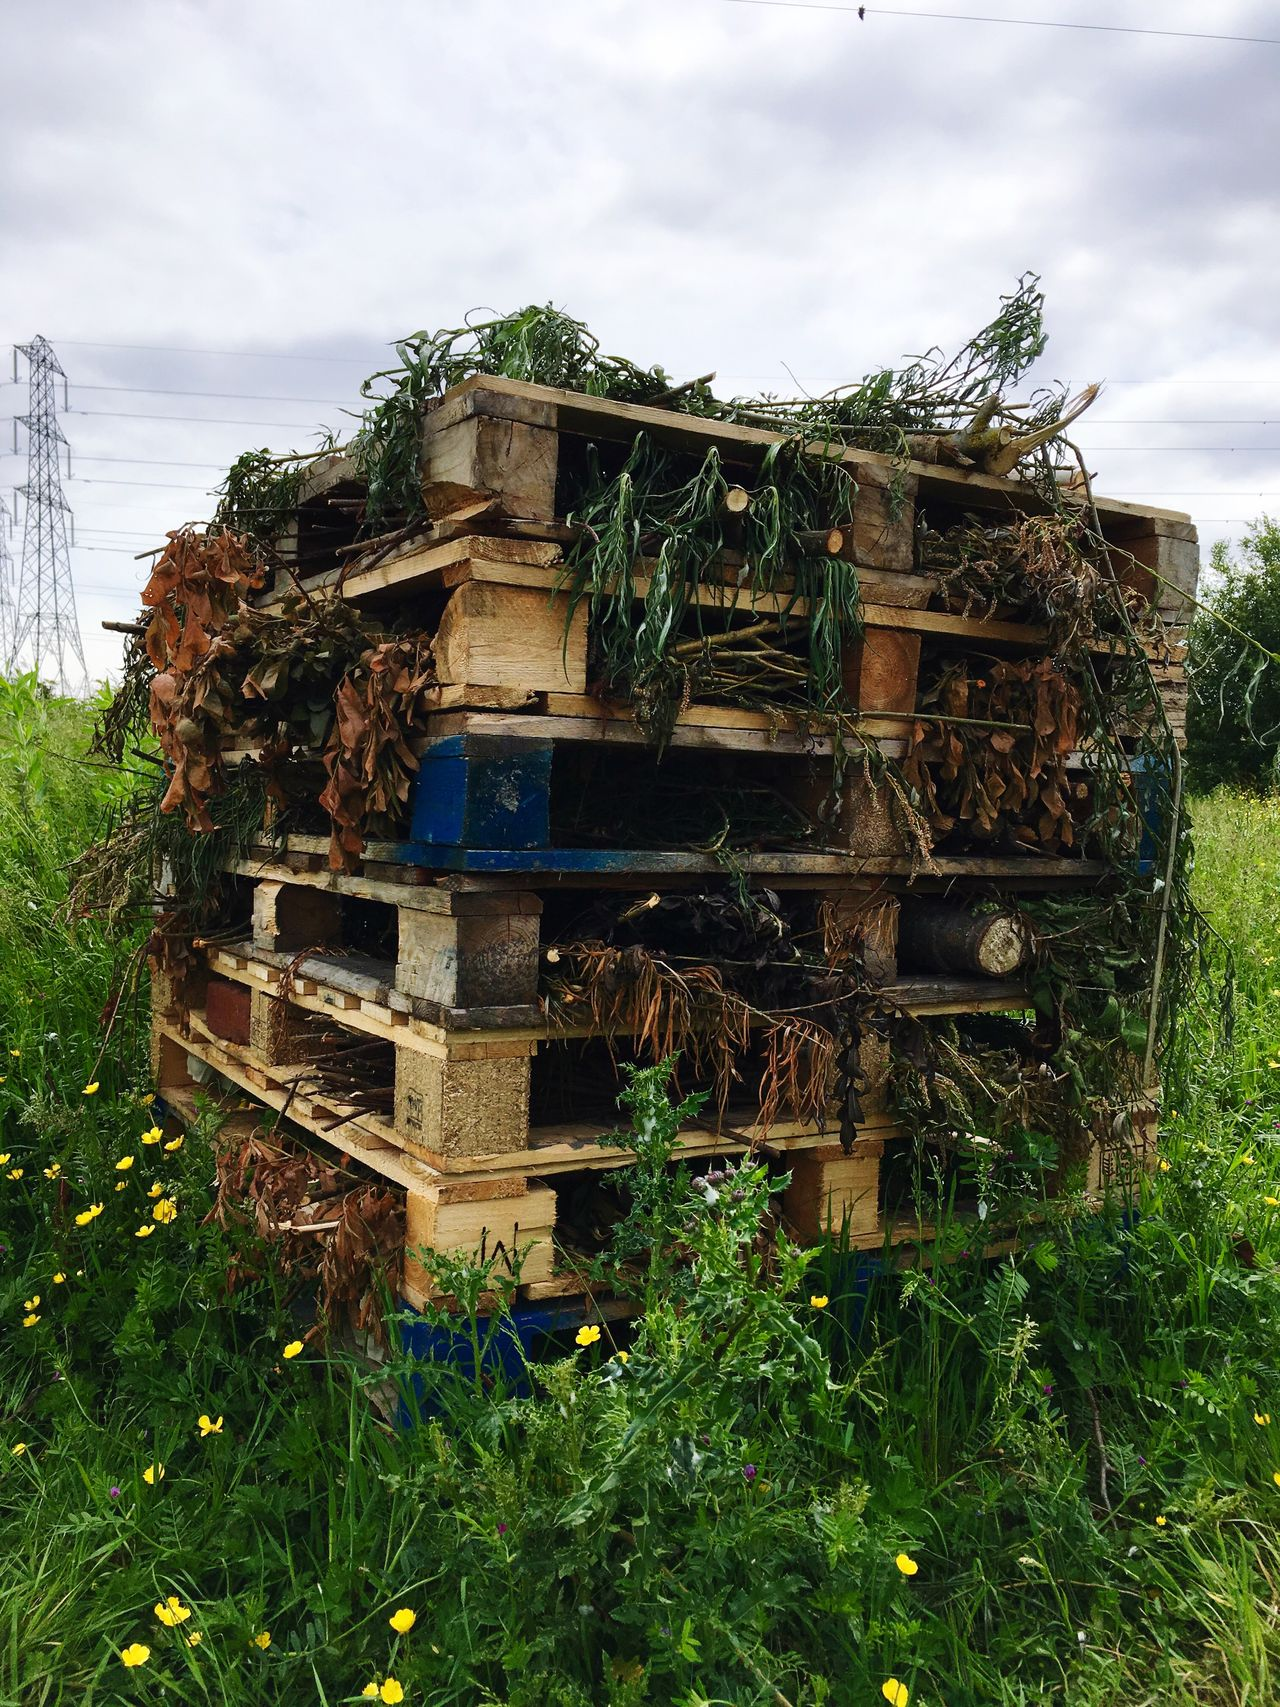 Insect Apartments Sky Field Grass No People Day Beehive Stack Outdoors Growth Nature Wood - Material Plant Cloud - Sky Green Color Agriculture Tree APIculture